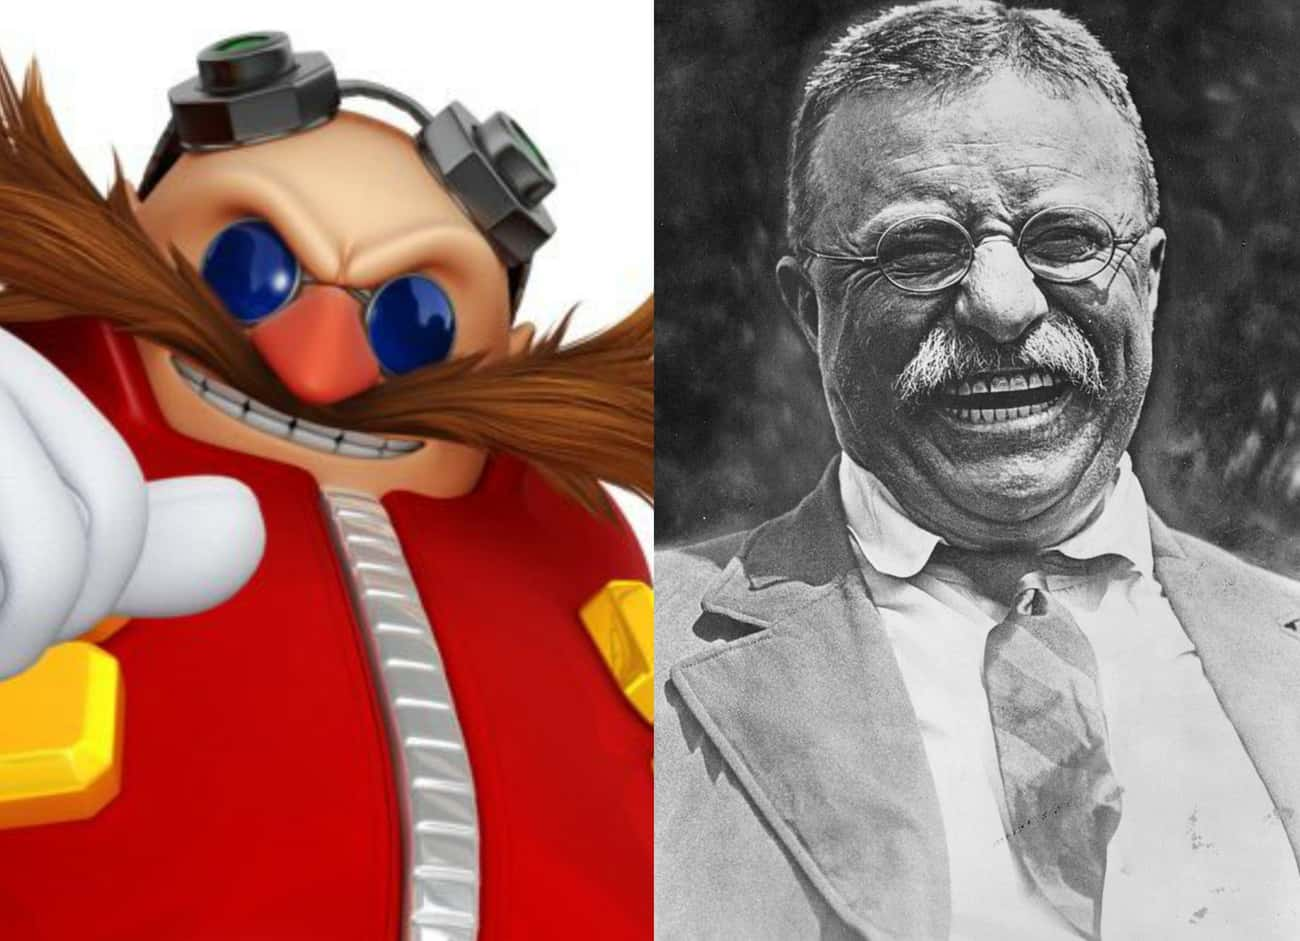 Dr. Eggman From Sonic The Hedg is listed (or ranked) 2 on the list 16 Video Game Characters We Should Have Known Are Modeled After Famous People